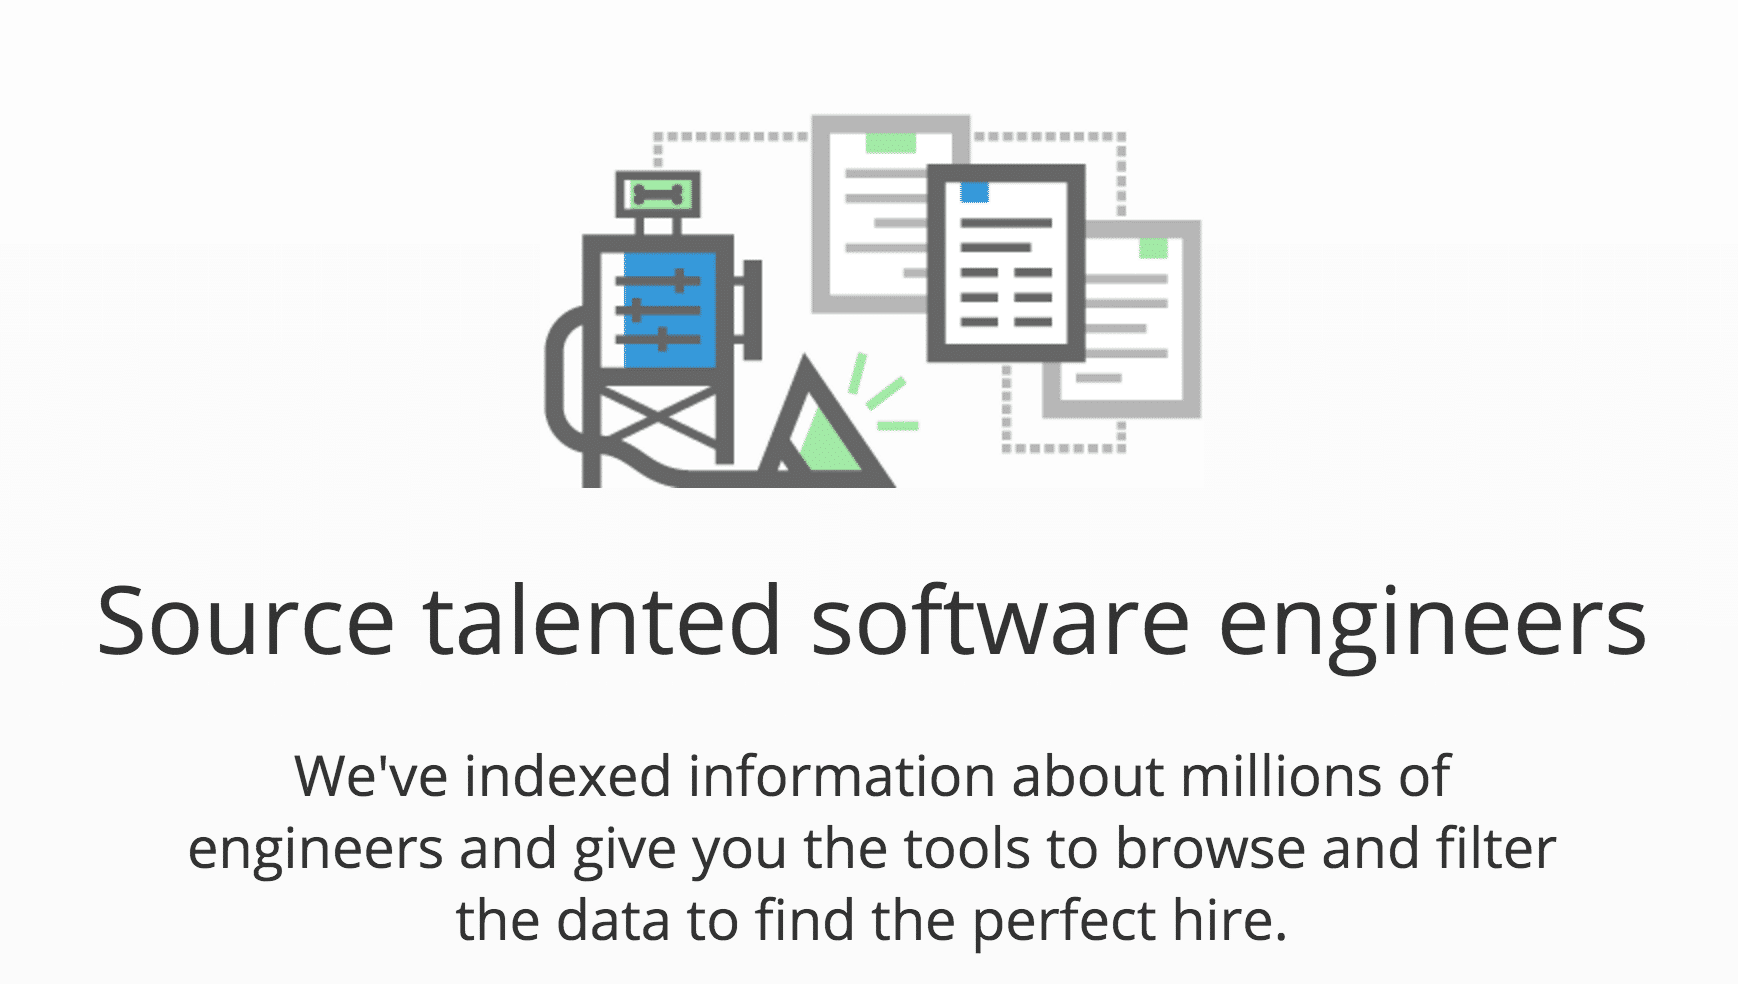 Recruiting software engineers